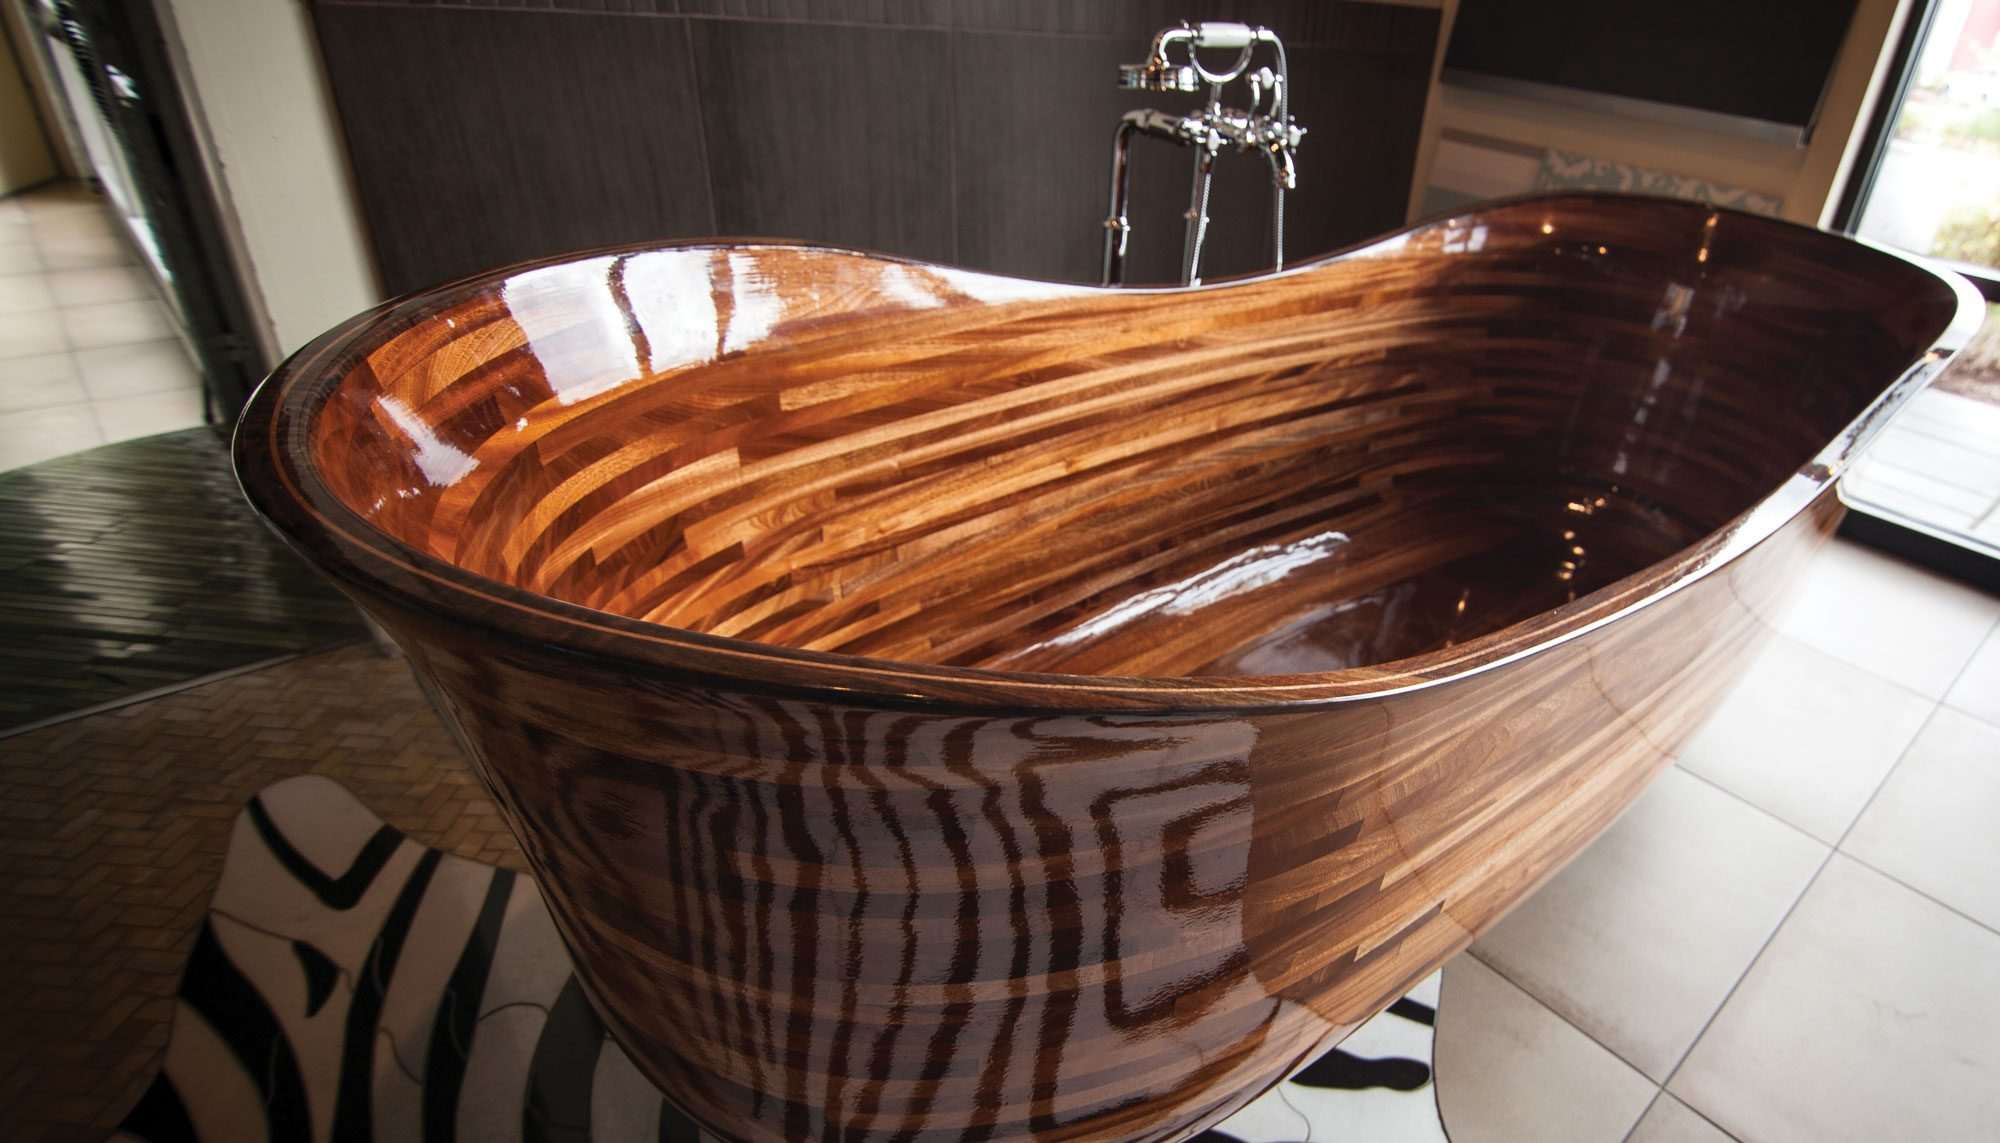 A Seattle Woodworker Is Turning Bathtubs Into Works of Art | Seattle ...